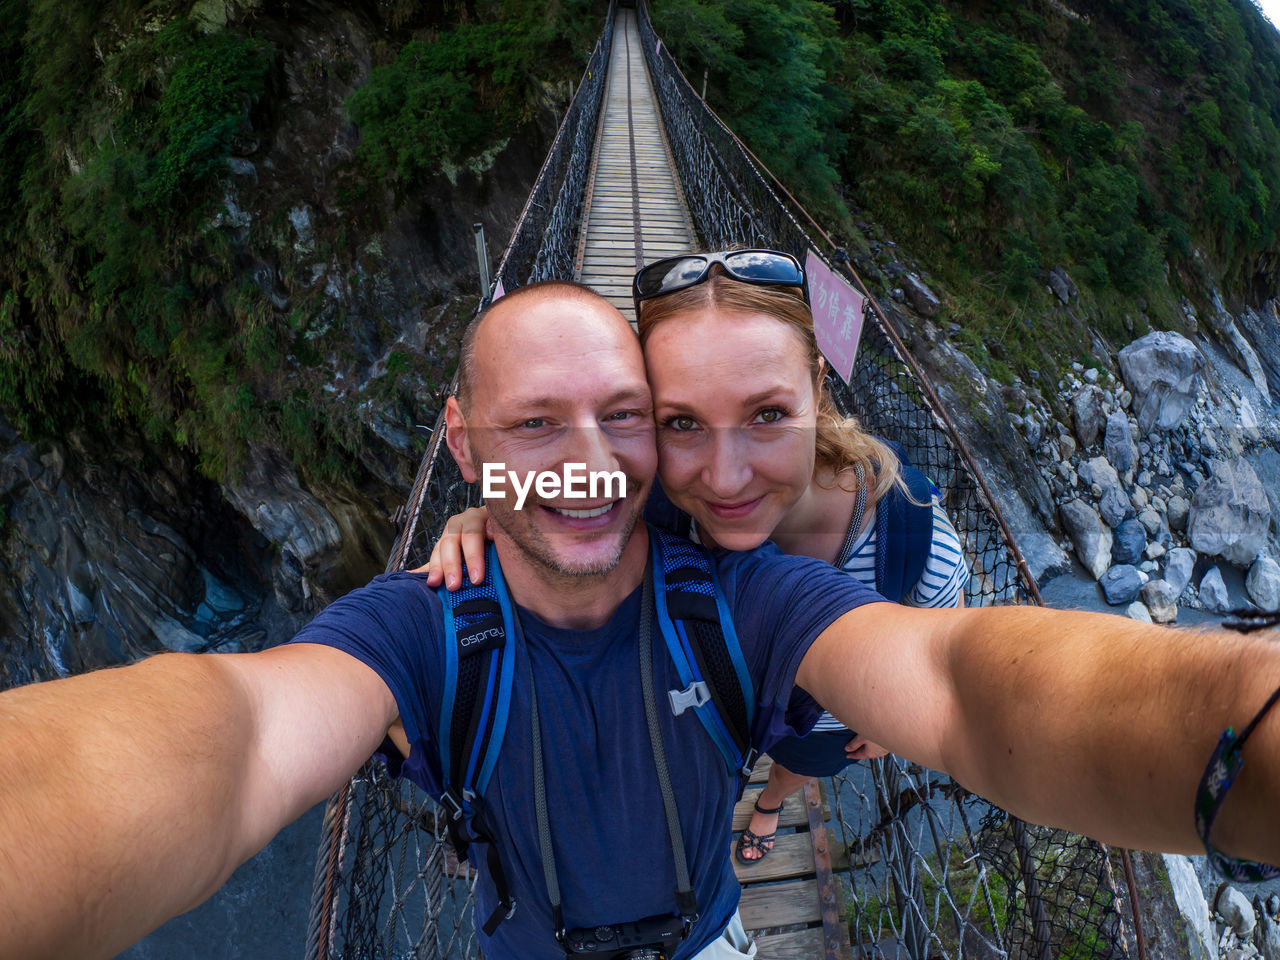 portrait, selfie, camera, looking at camera, two people, wireless technology, photography themes, smiling, togetherness, leisure activity, men, technology, adult, emotion, happiness, lifestyles, bonding, adventure, self portrait photography, real people, couple - relationship, positive emotion, outdoors